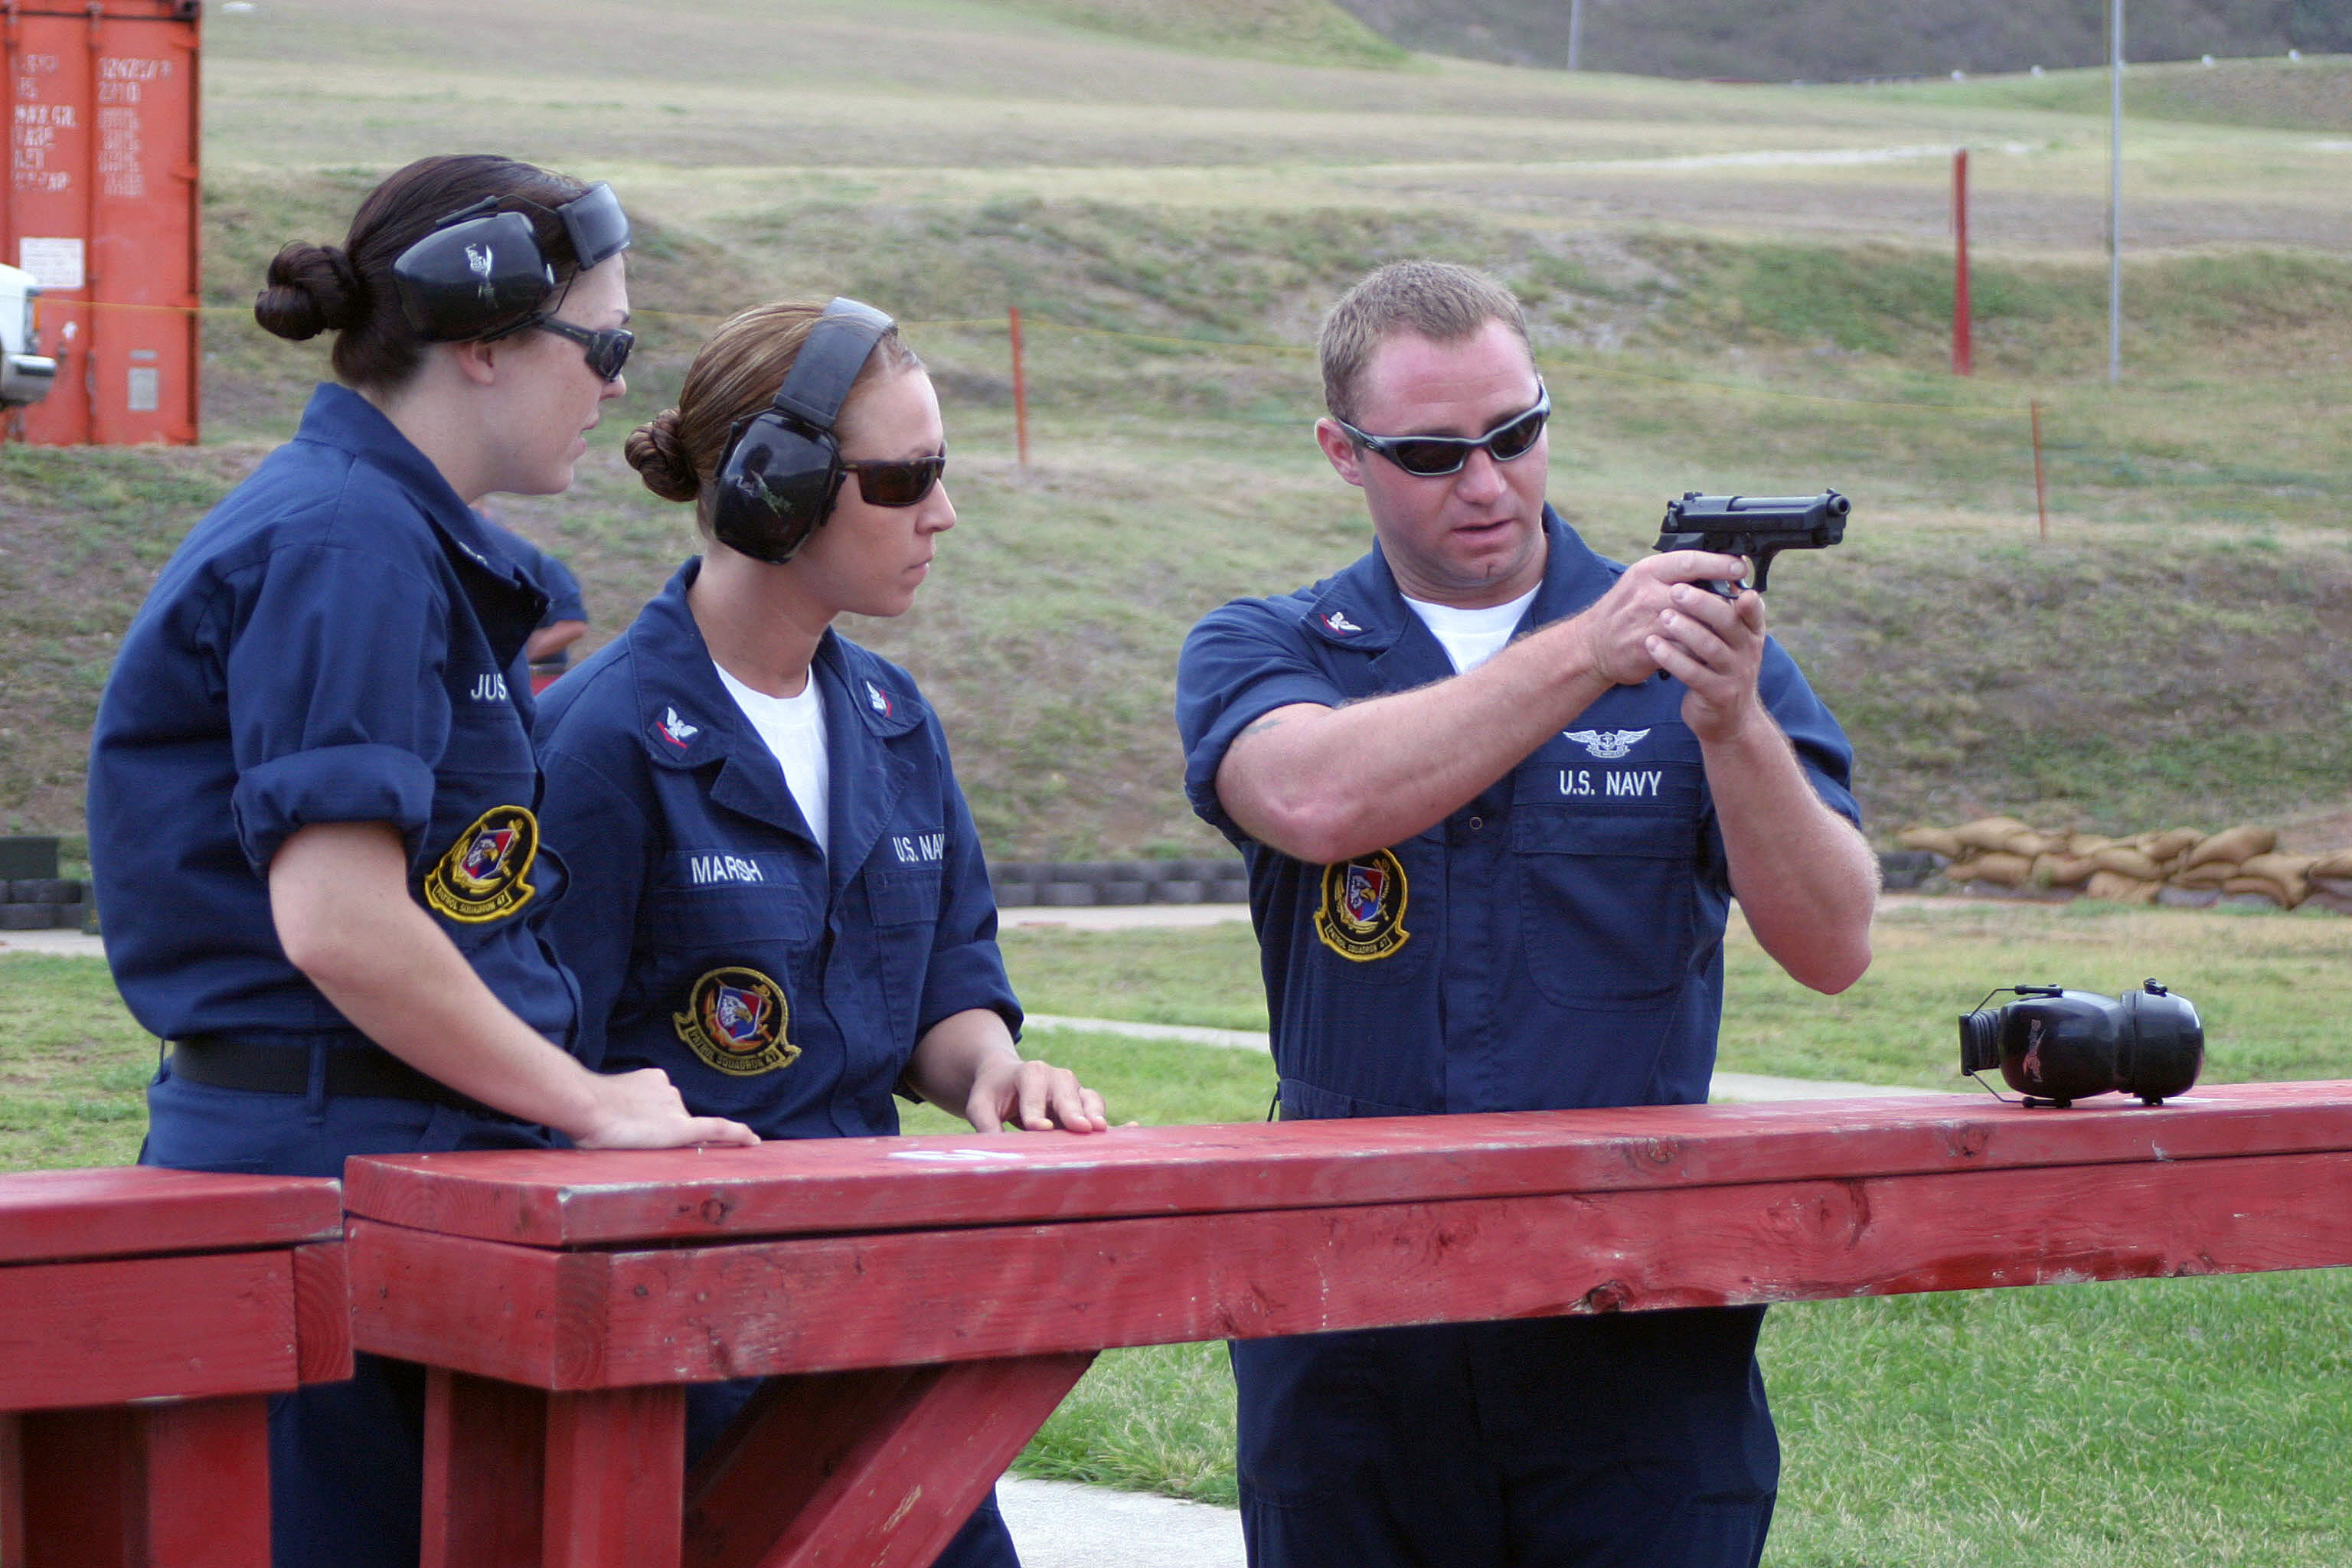 US Navy (USN) Aviation Ordnanceman Third Class (Air Warfare) (AO3(AW)) Justin Matt (right) instructs USN Aviation Electrician Third Class (AE3) Michele Justice (left) and USN AO3 Marisa Marsh on the proper firing technique of a 9mm M9 Pistol. Small arms qualifications are held for all personnel of Patrol Squadron 47 (VP-47), Marine Corps Base (MCB) Hawaii, Kaneohe Bay, Hawaii (HI), in preparation for deployment